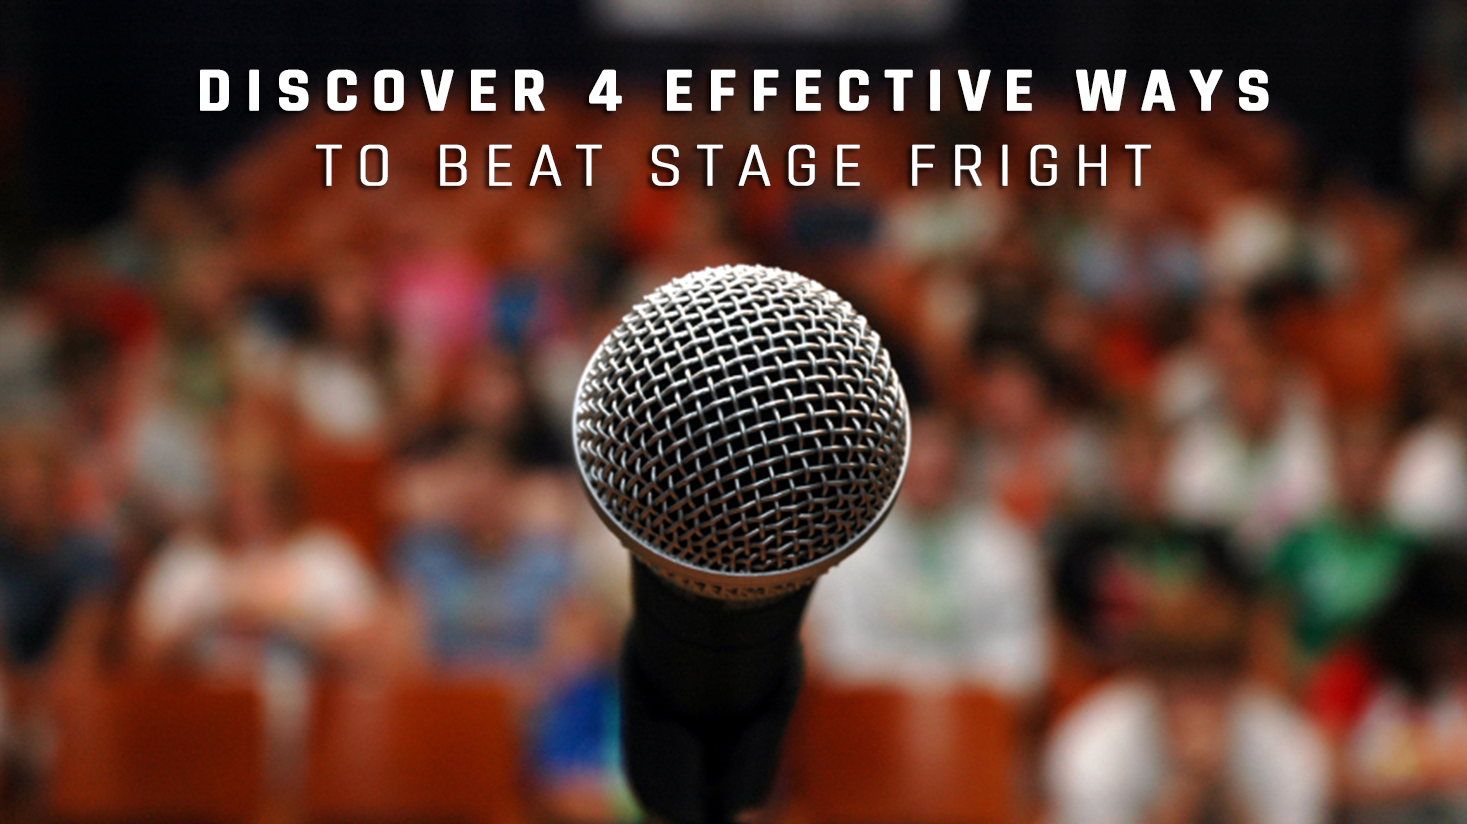 Discover 4 Effective Ways to Beat Stage Fright